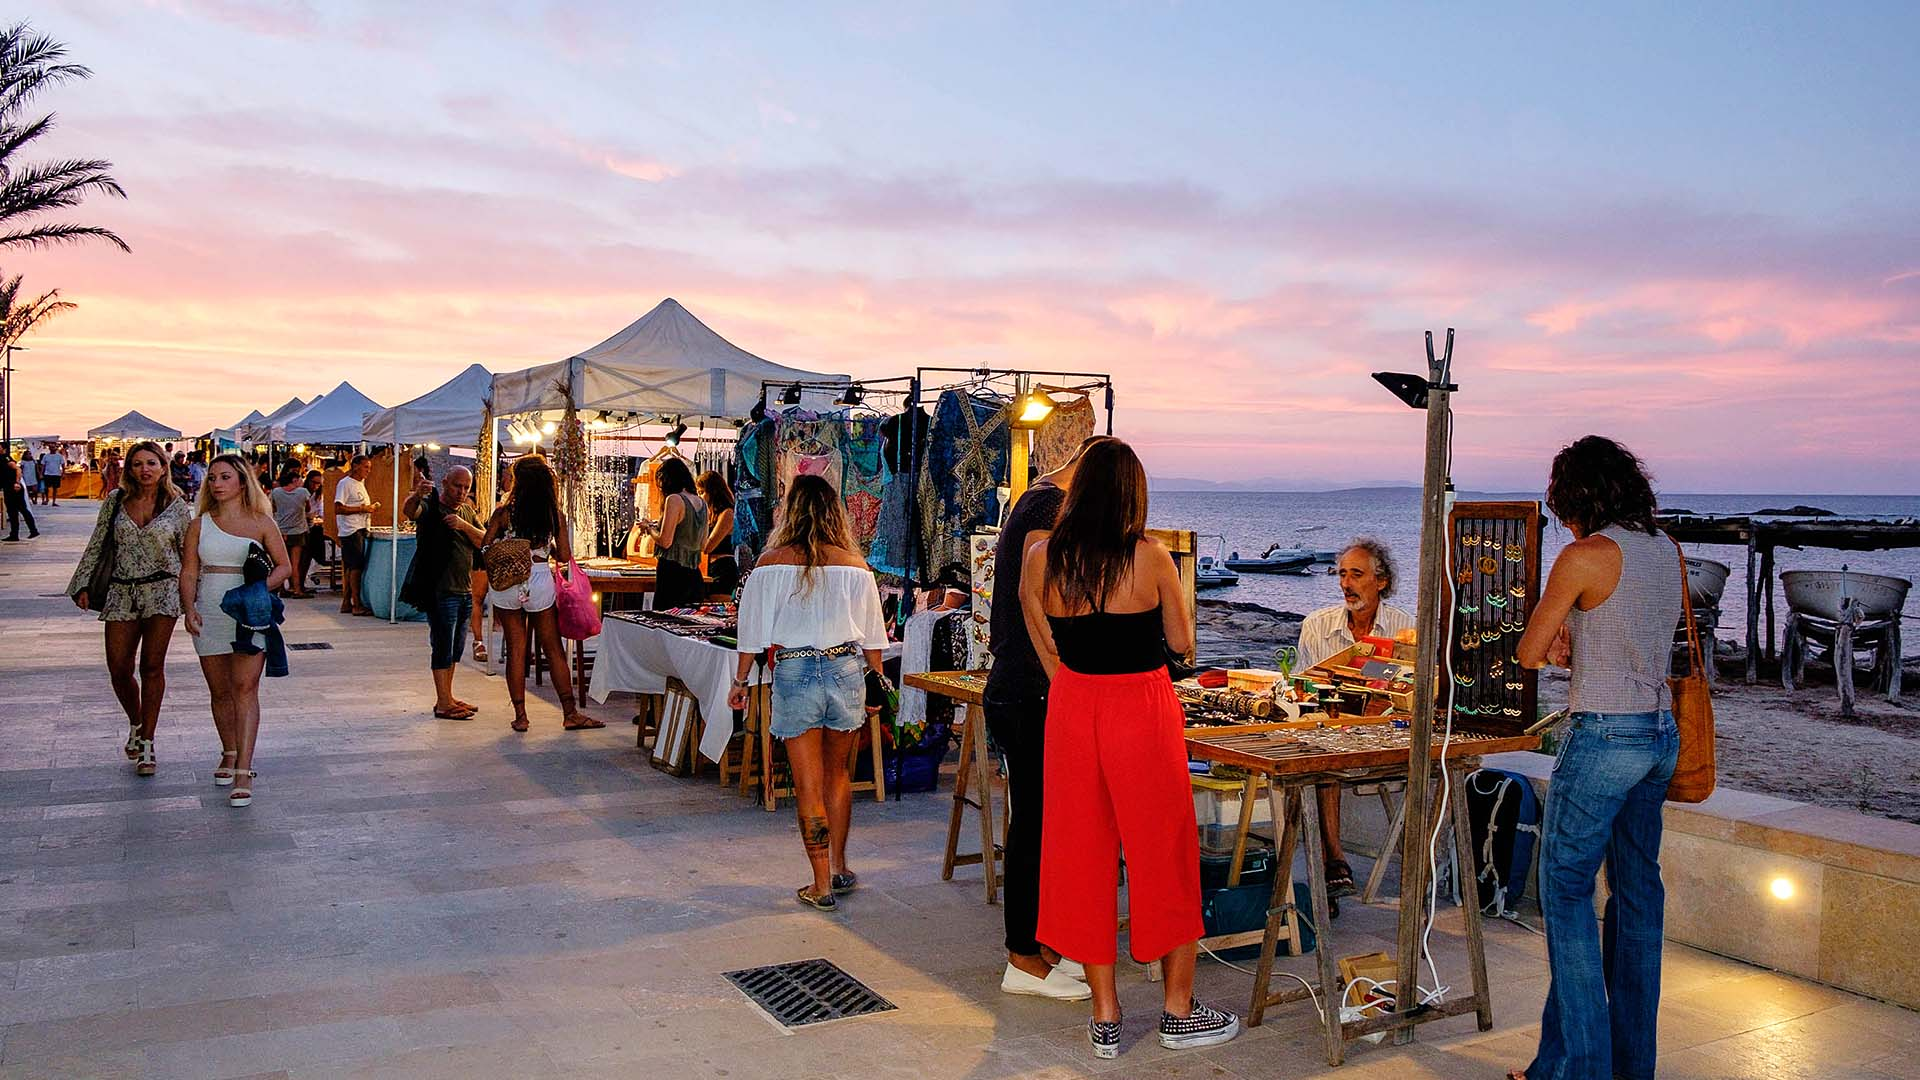 In May the hippie atmosphere returns to Formentera